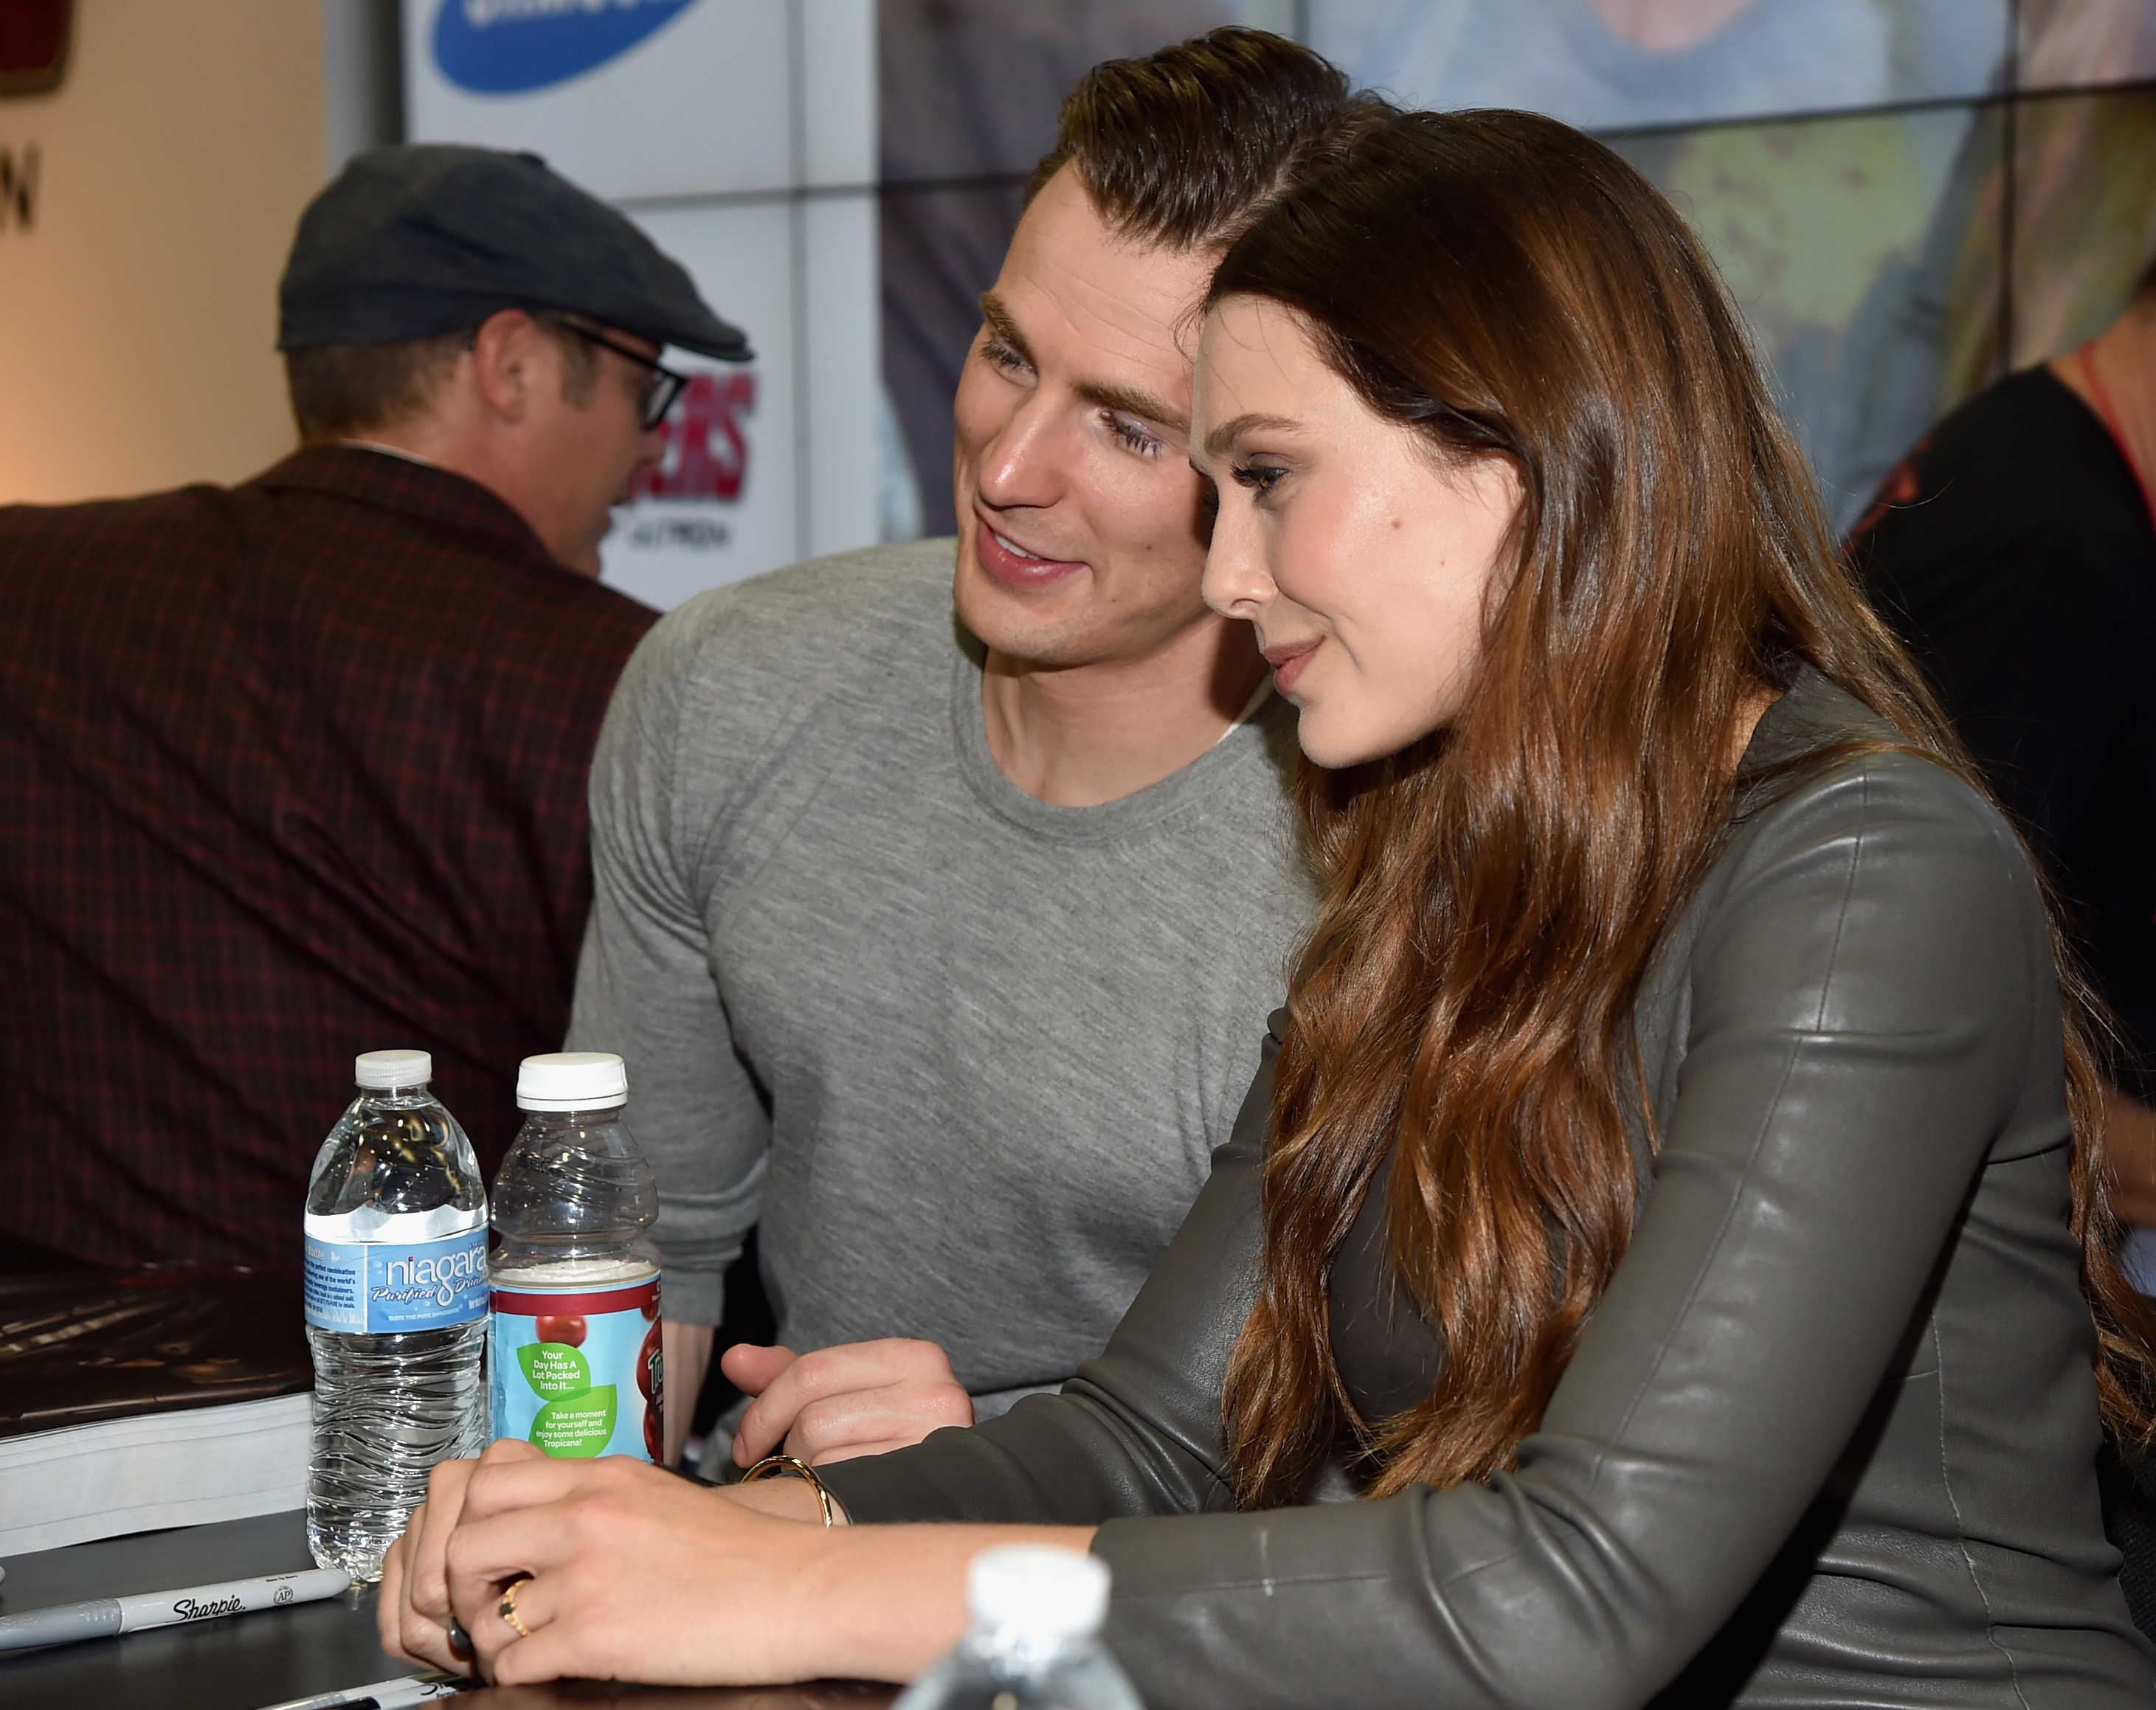 Marvel S Avengers Age Of Ultron Booth Signing During